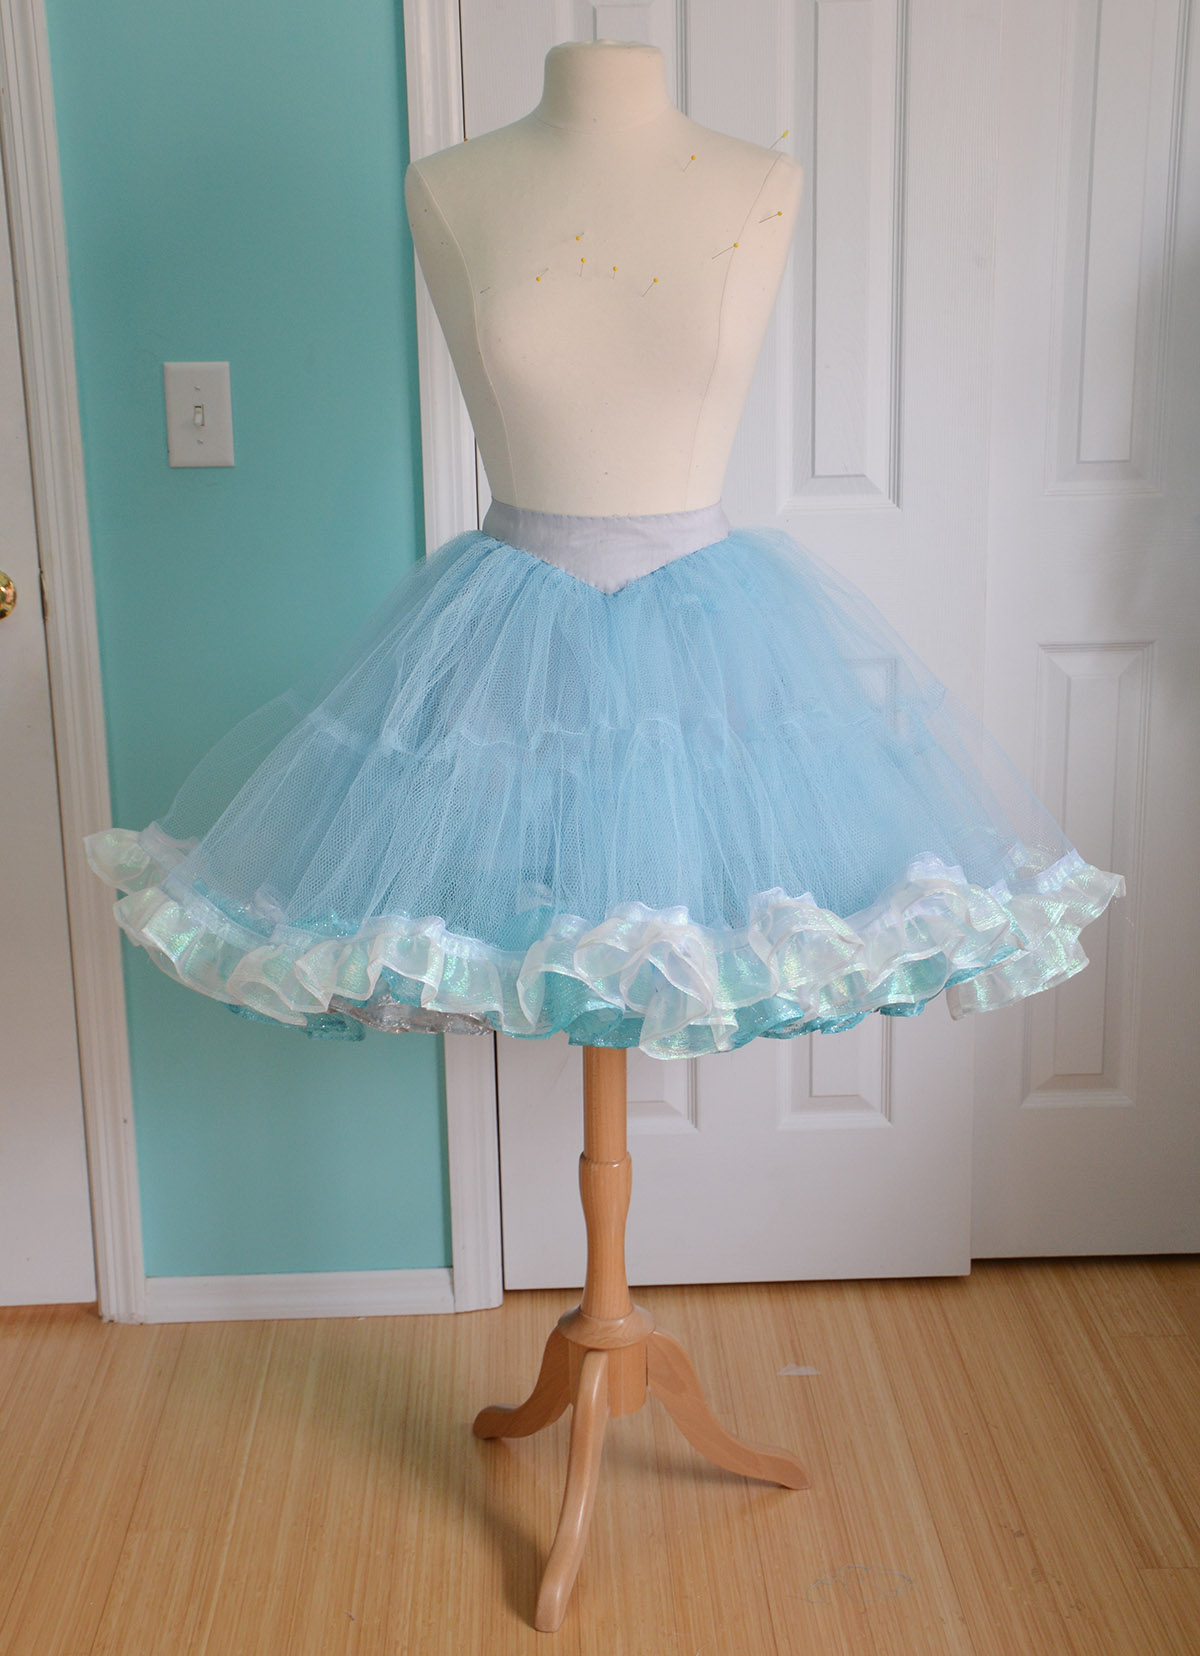 Fabric for making a petticoat?